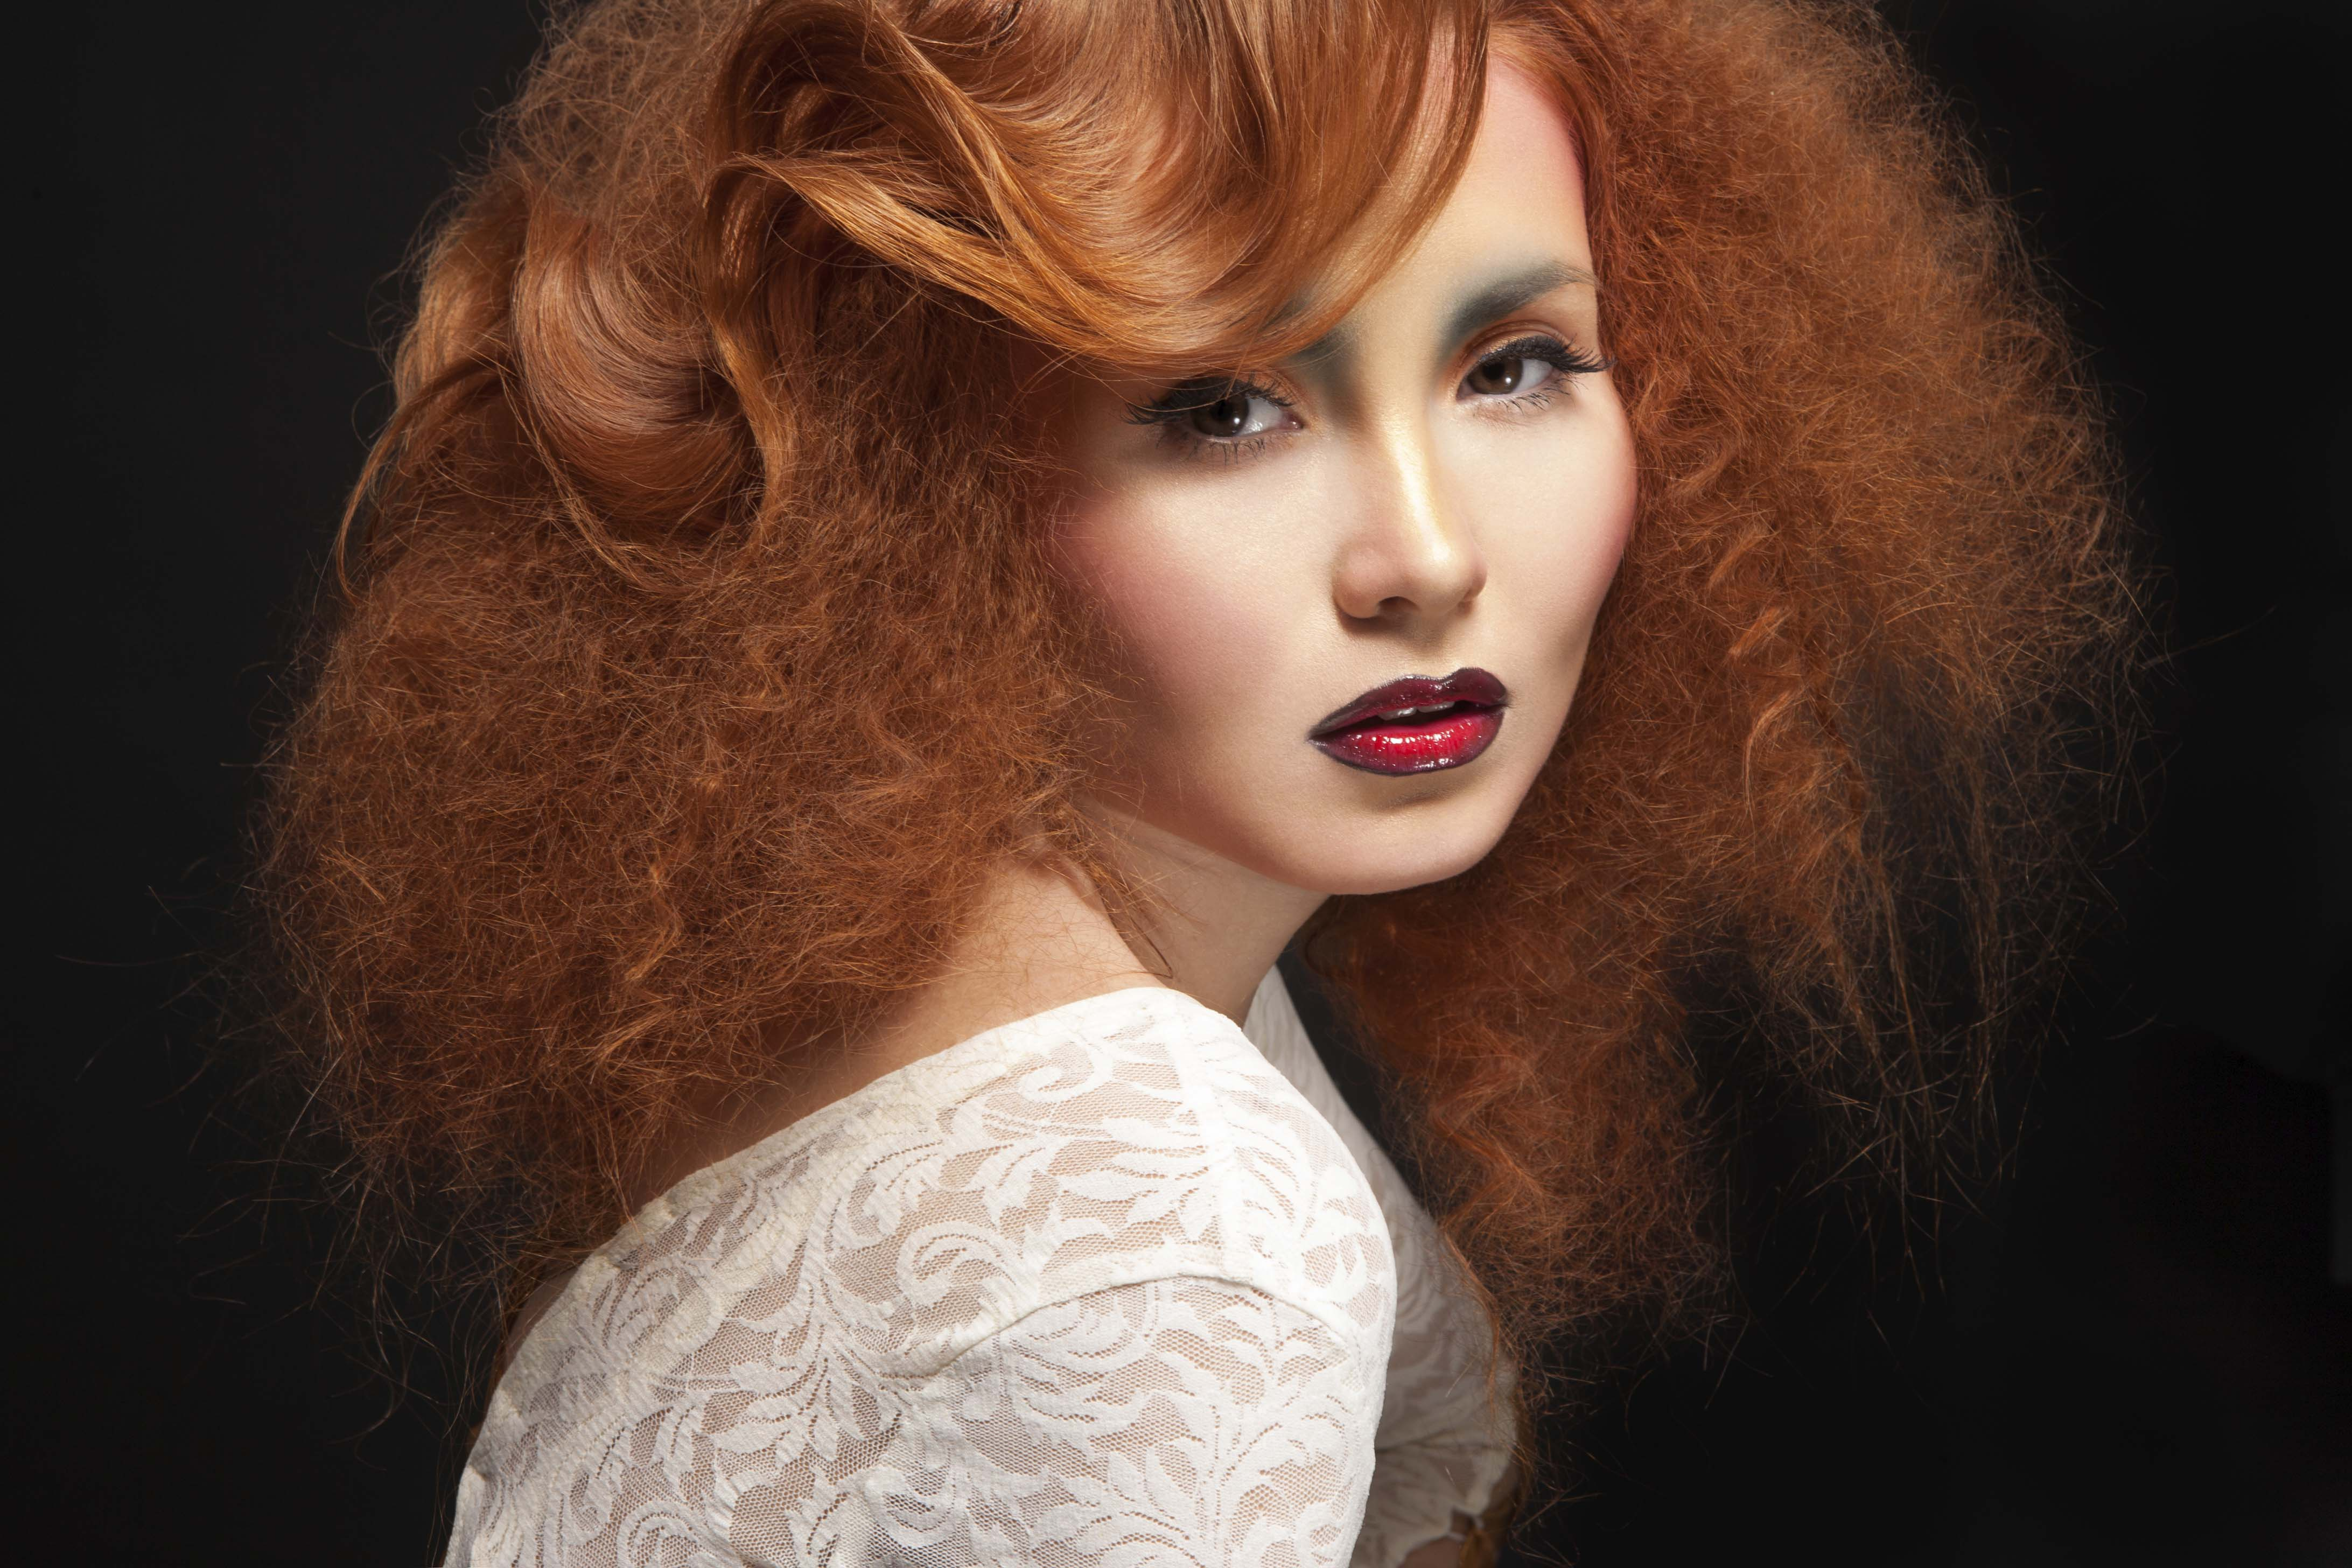 Red Hair How To Find The Perfect Bold Shade For You